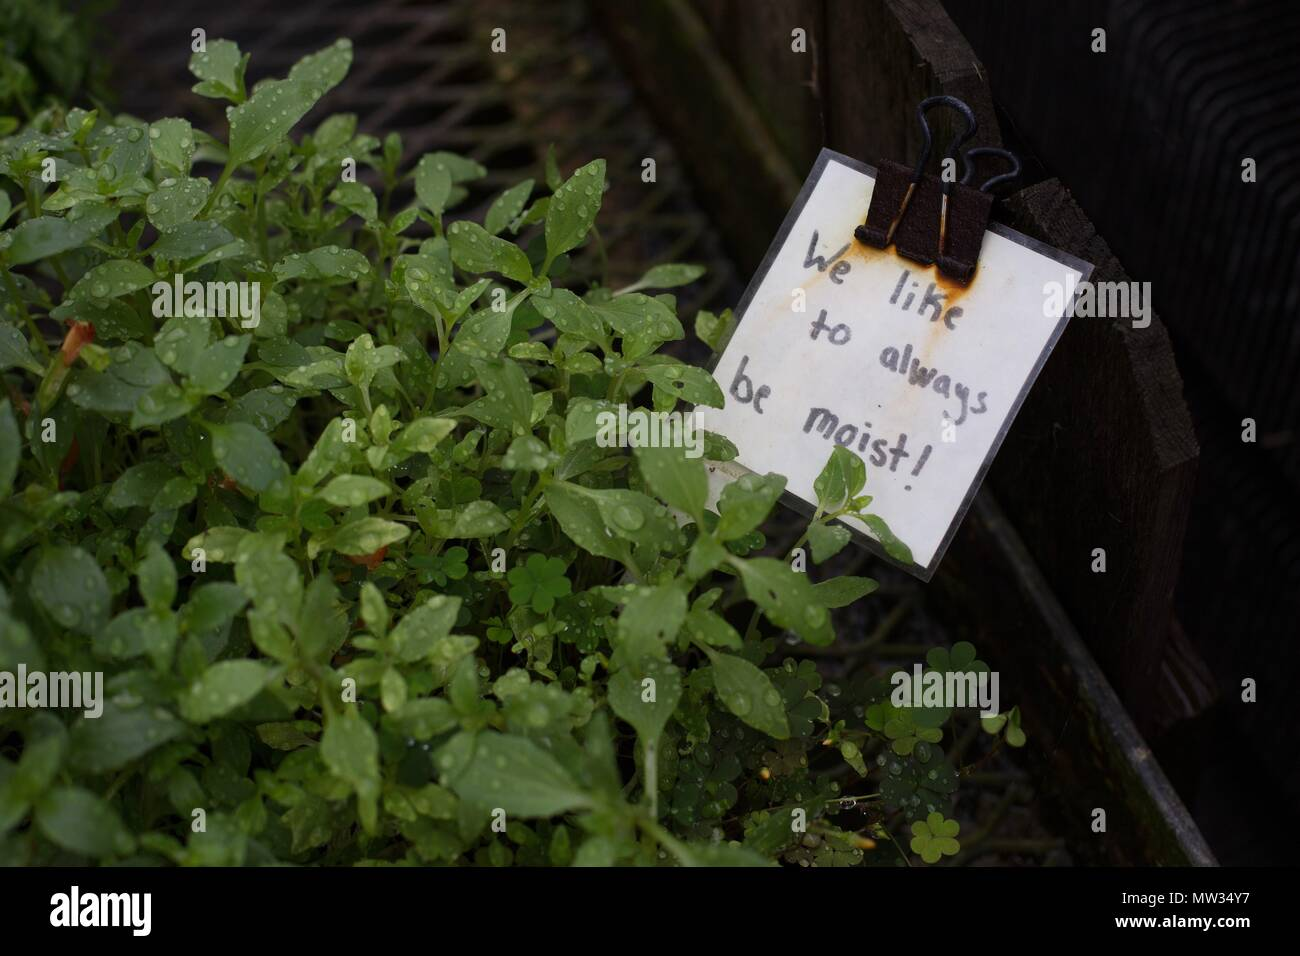 A funny sign about liking to be 'moist', on a plant. - Stock Image